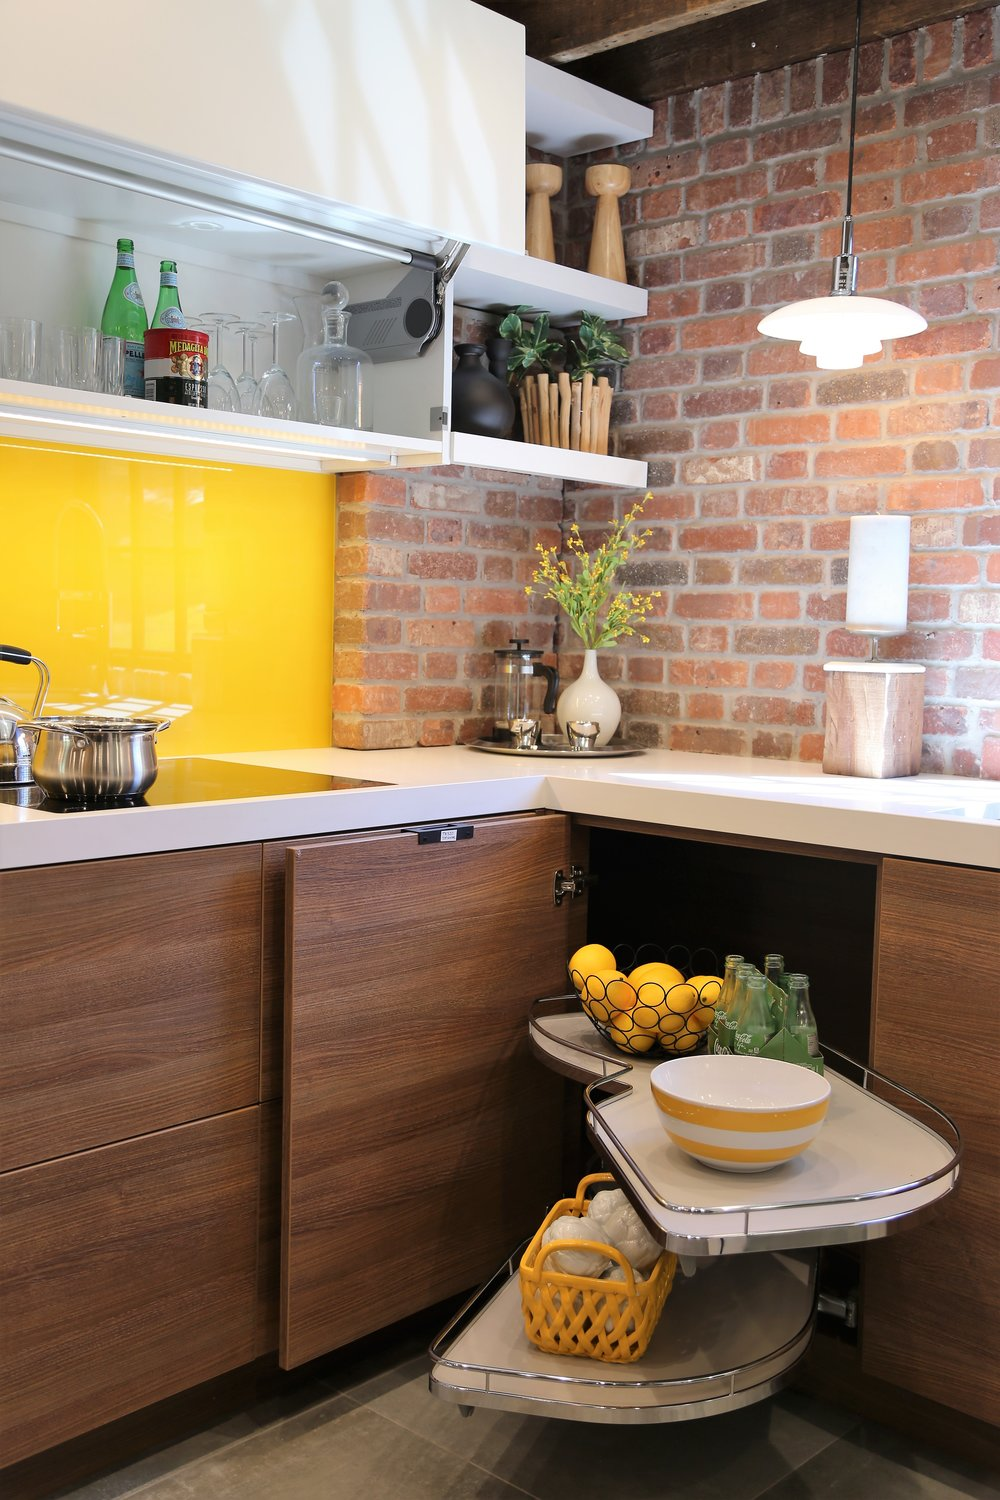 Accessibility - Upper cabinet doors open and close with a push of a button while lower cabinets are open with a push.  The corner cabinet is easily accessed with a Lemanns II swing out basket.